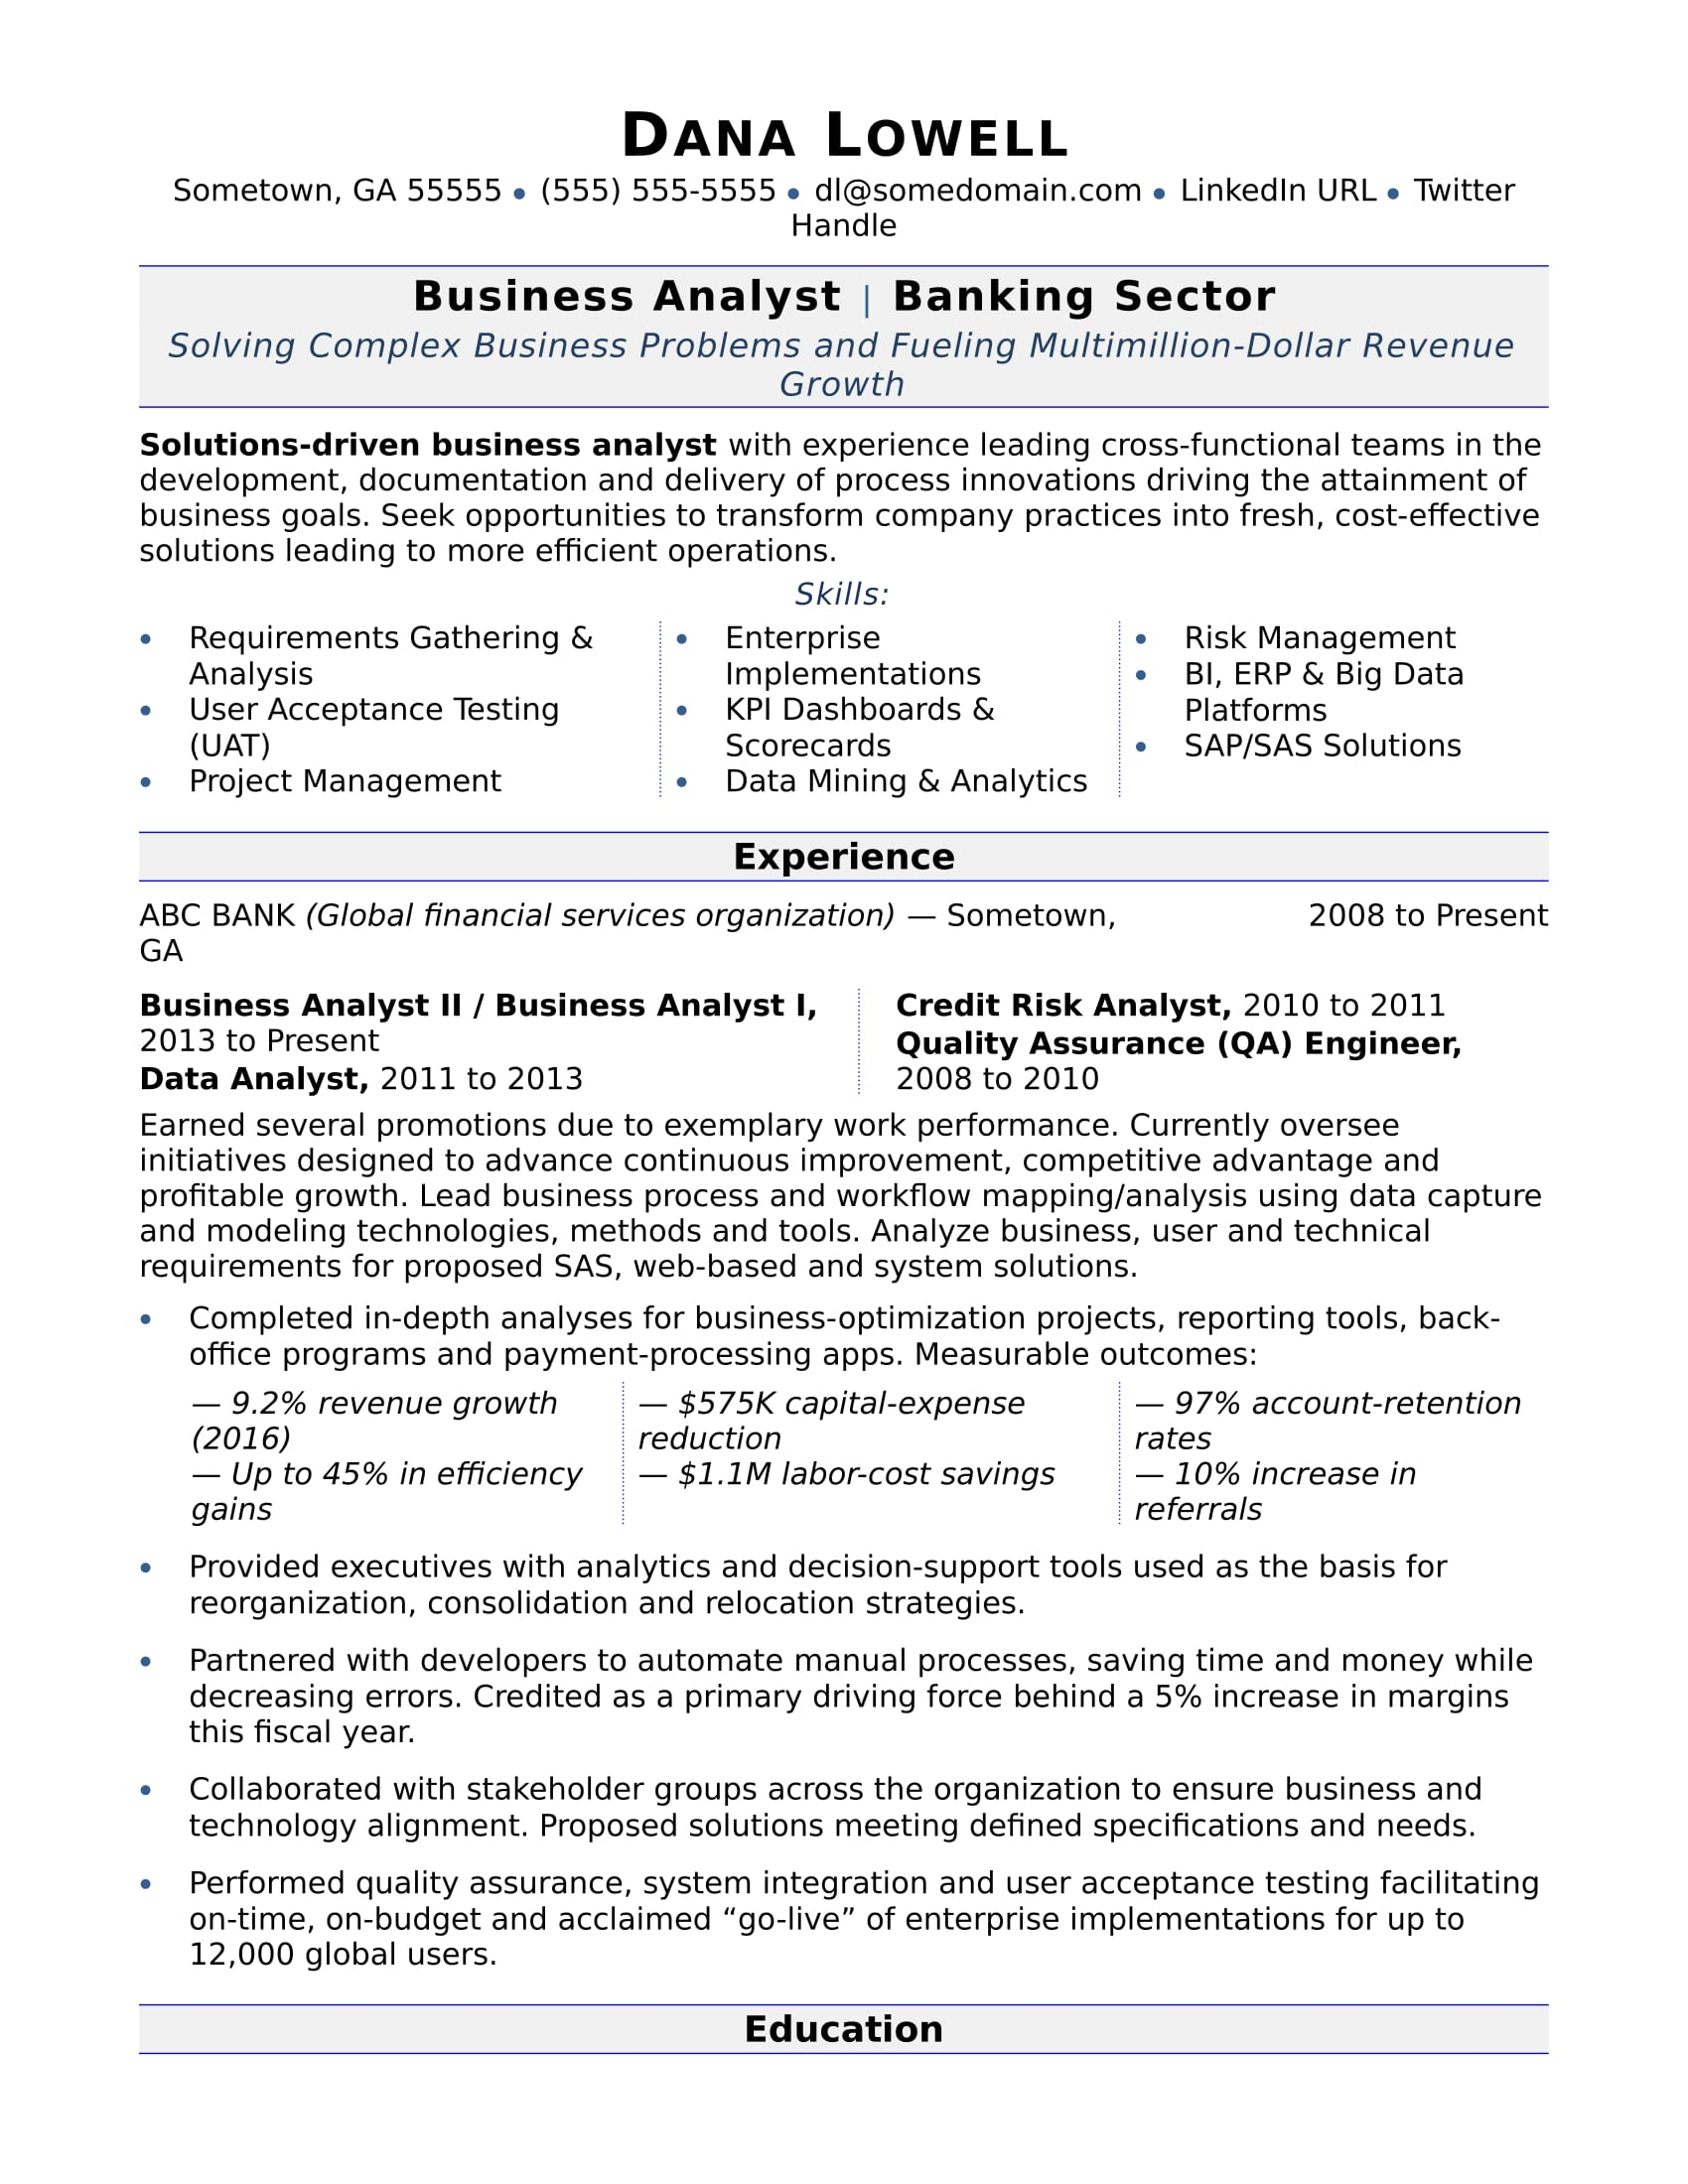 business analyst resume sample - Sample Of Business Analyst Resume